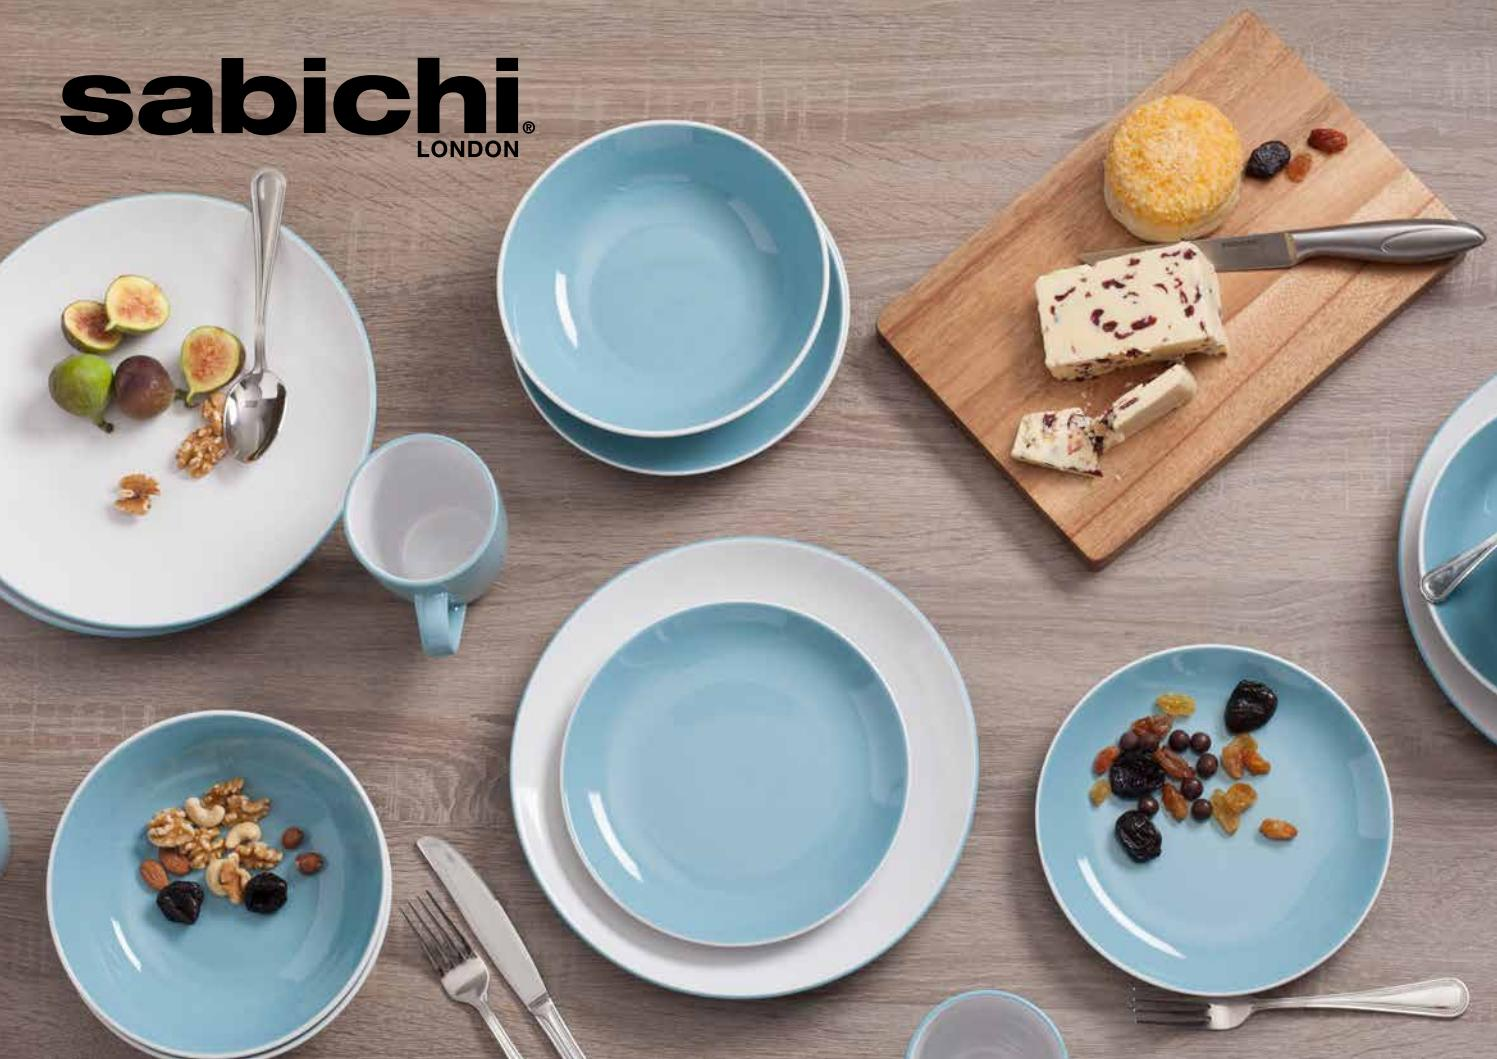 Sabichi 12 Piece Day to Day White Porcelain Dinner Dining Set NEW